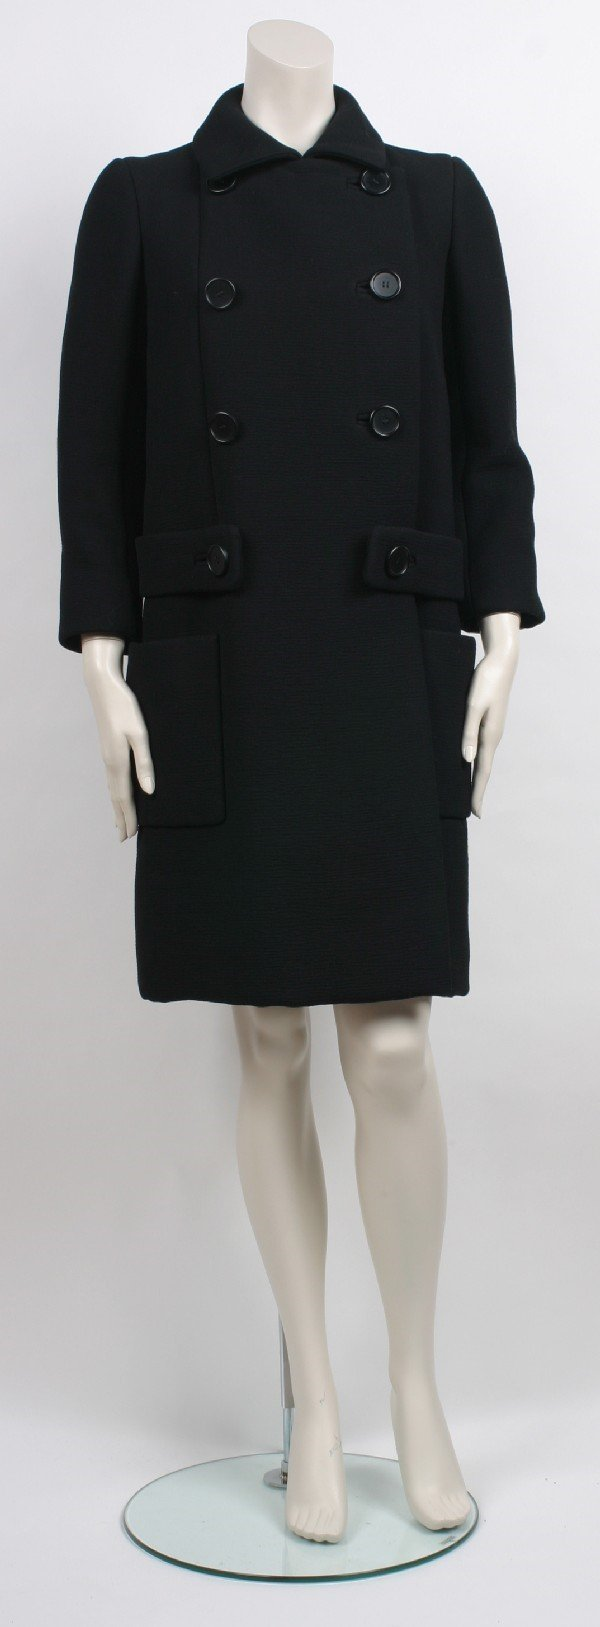 15: Norman Norell Black Hard Finished Wool Coat